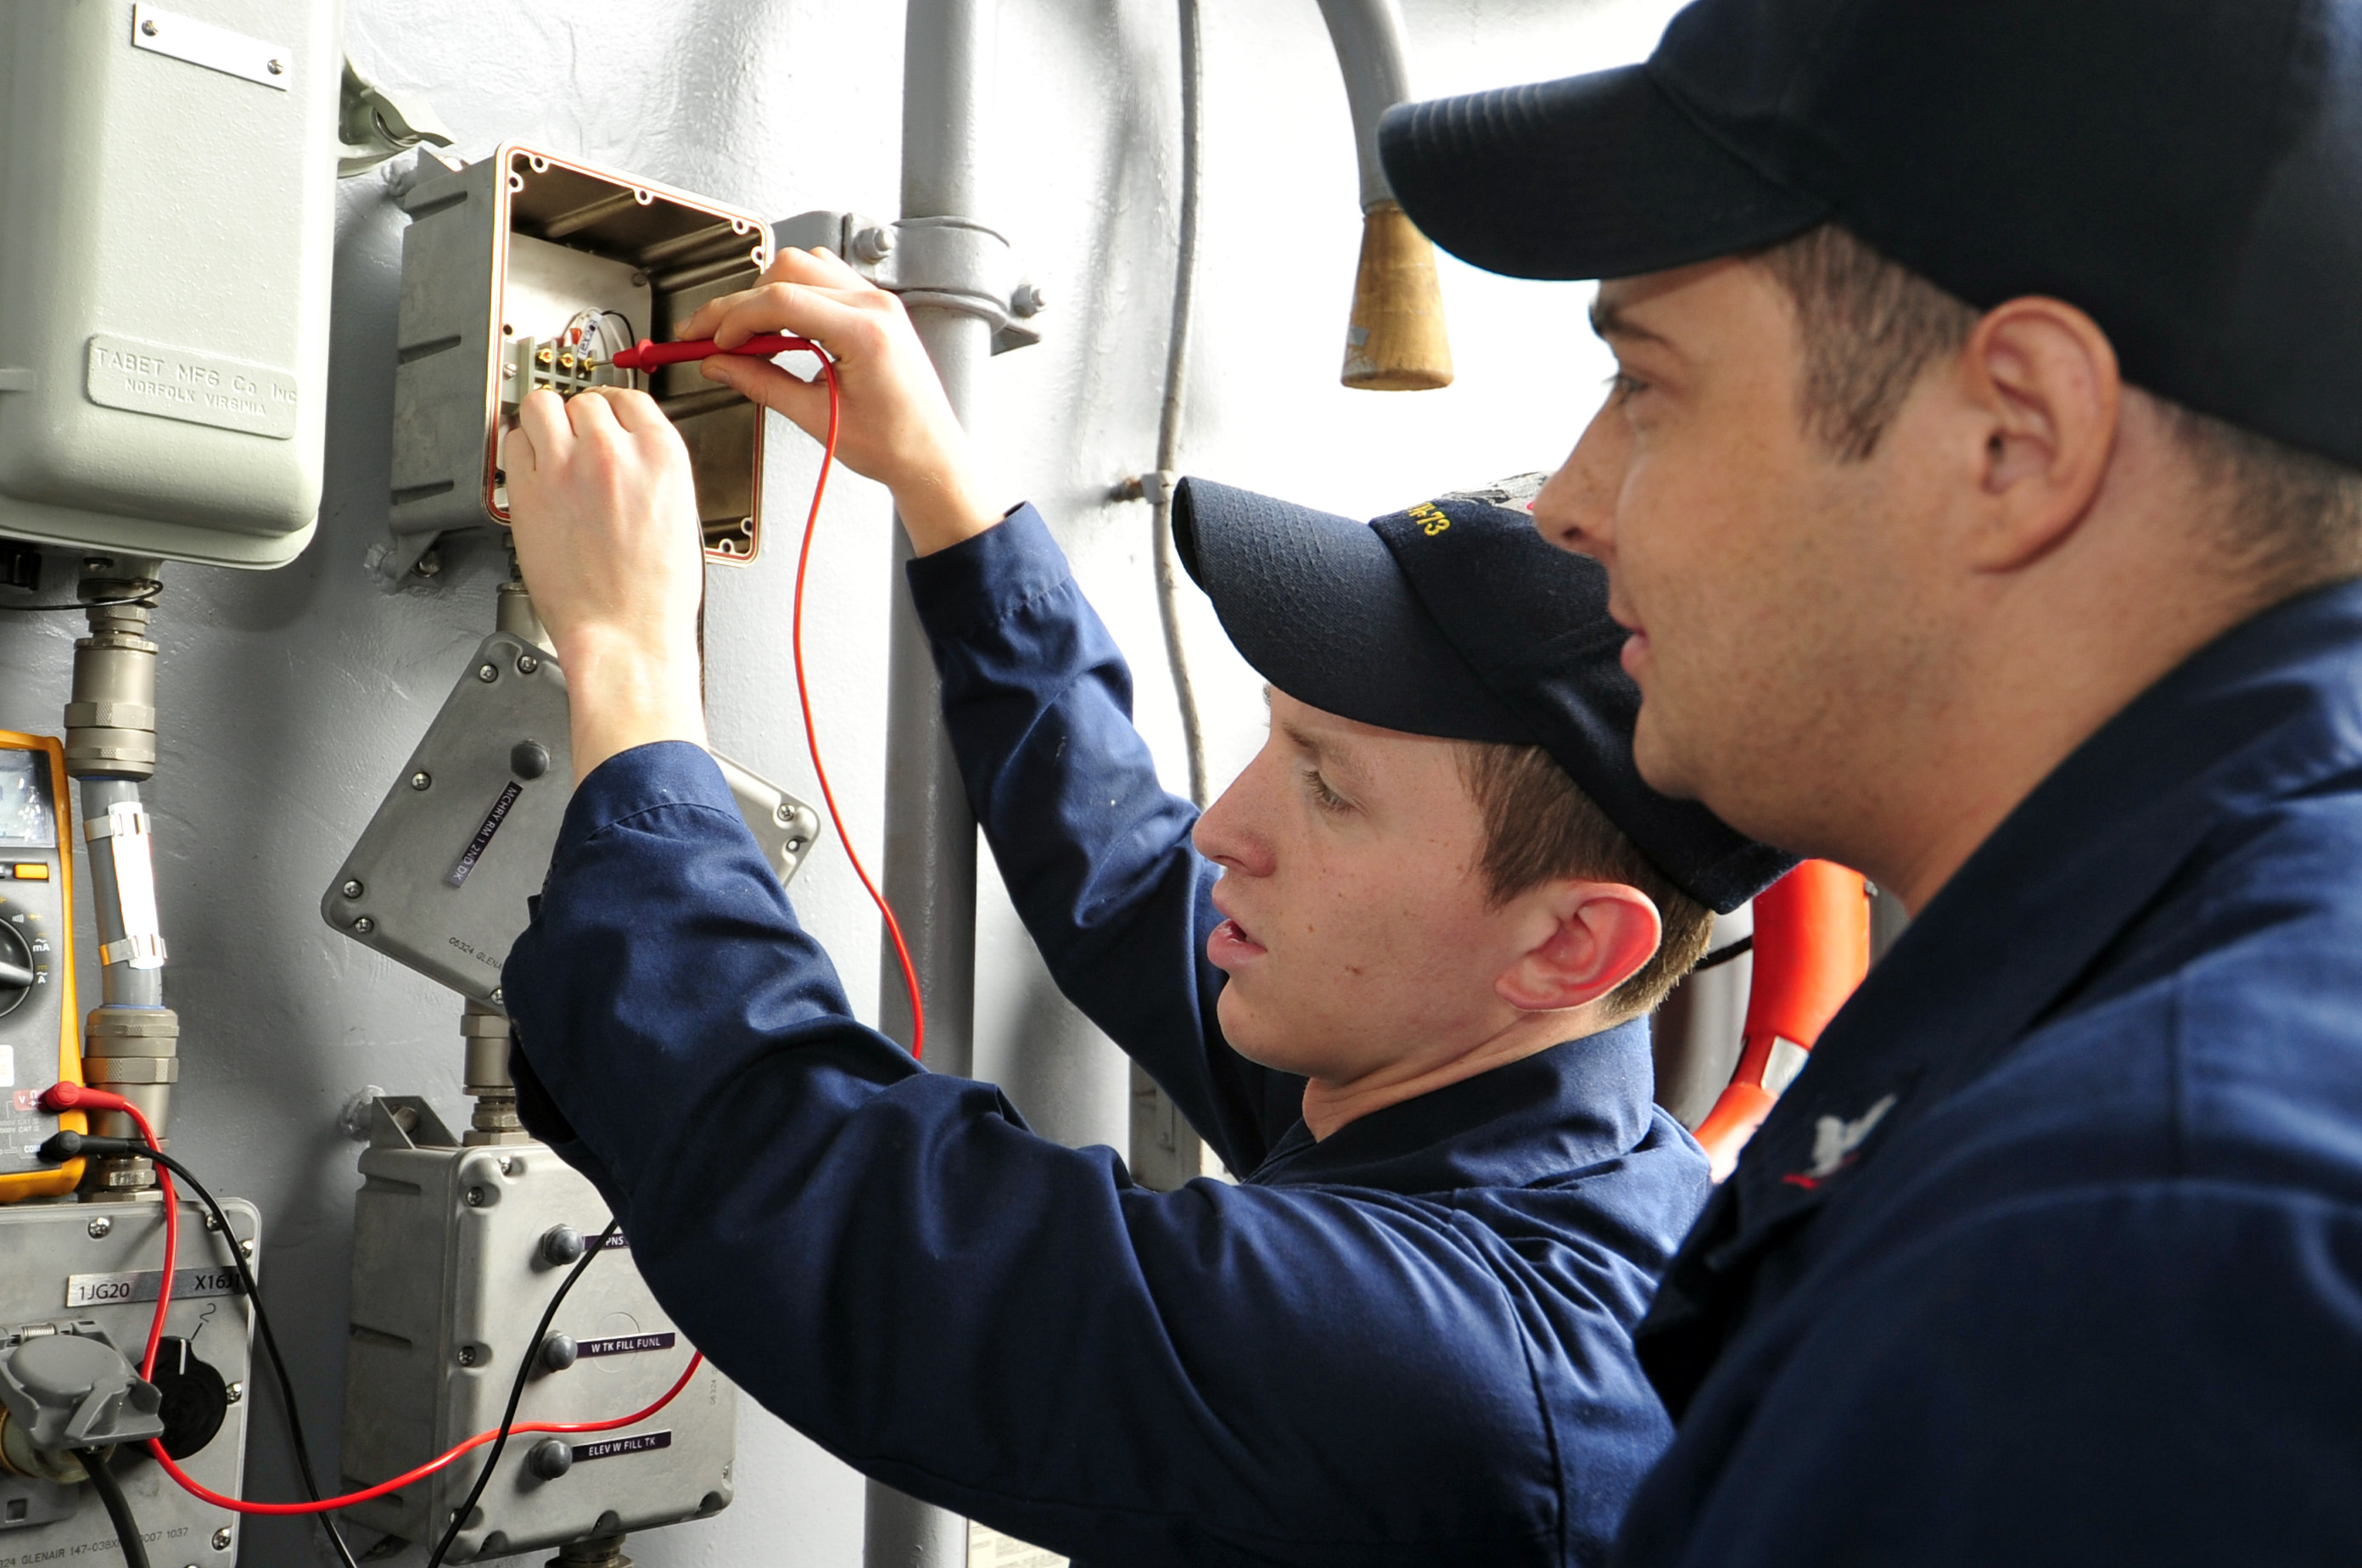 110602-N-VL413-011  YOKOSUKA, Japan (June 2, 2011) Interior Communications Electrician Fireman Michael Colonna, left, from Sterling Heights, Mich., and Interior Communications Electrician 3rd Class Anthony King, from Nacogdoches, Texas, checks for voltage on an aircraft carrier elevator bell buzzer circuit during a dock trial aboard the aircraft carrier USS George Washington (CVN 73). George Washington is the U.S. Navy's only full-time forward-deployed aircraft carrier, homeported in Yokosuka, Japan, and ensures security and stability across the western Pacific Ocean. (U.S. Navy photo by Mass Communication Specialist Seaman Cheng S. Yang/Released)